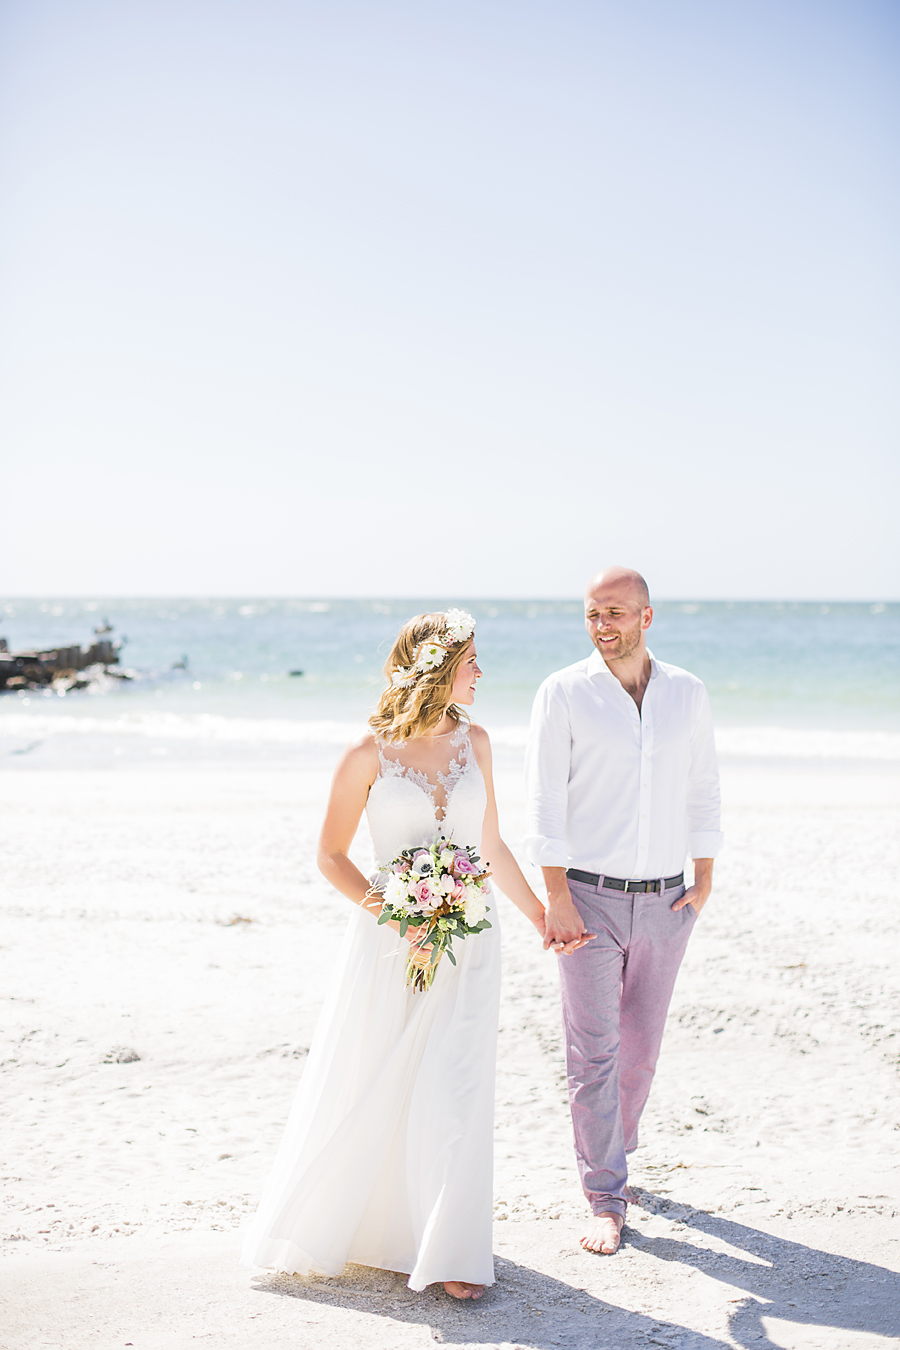 Luise + Daniel - Anna Maria Island Wedding Photography - Emily & Co 1.jpg